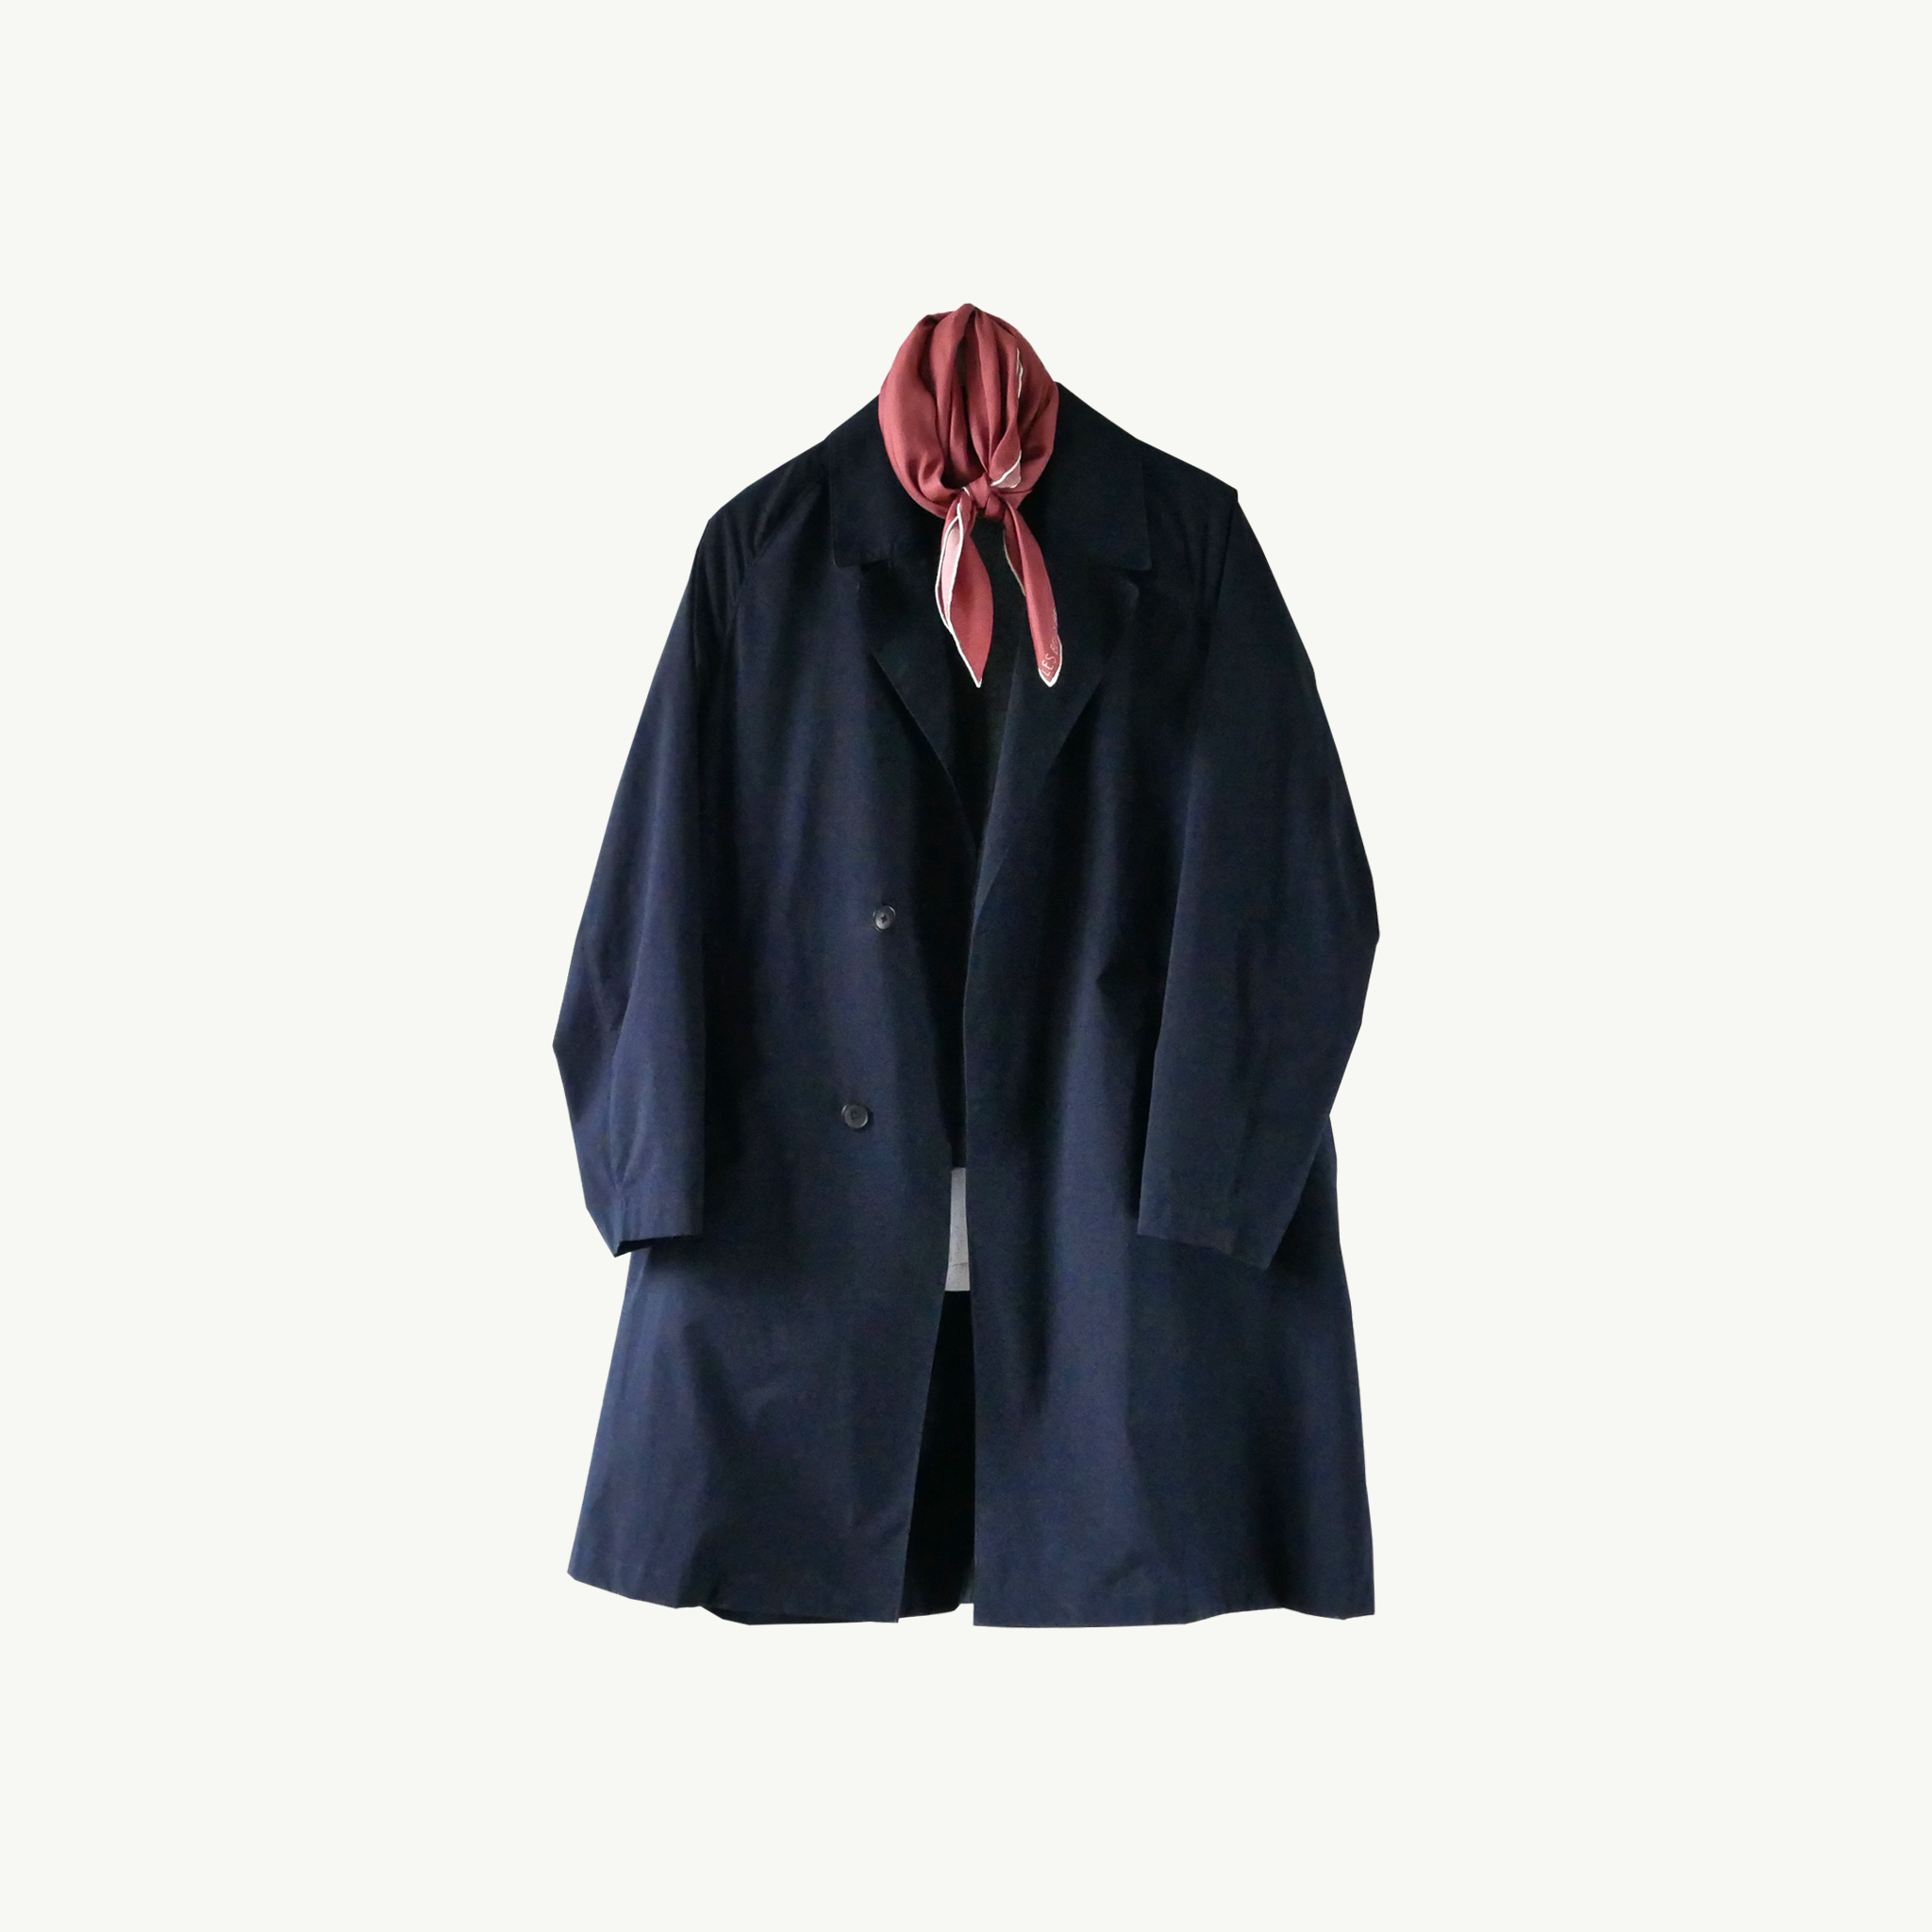 Les Belles Heures Procida, 20h52 100% hand rolled cashmere, modal and silk scarf in our 90cm format worn on a navy oversized raincoat